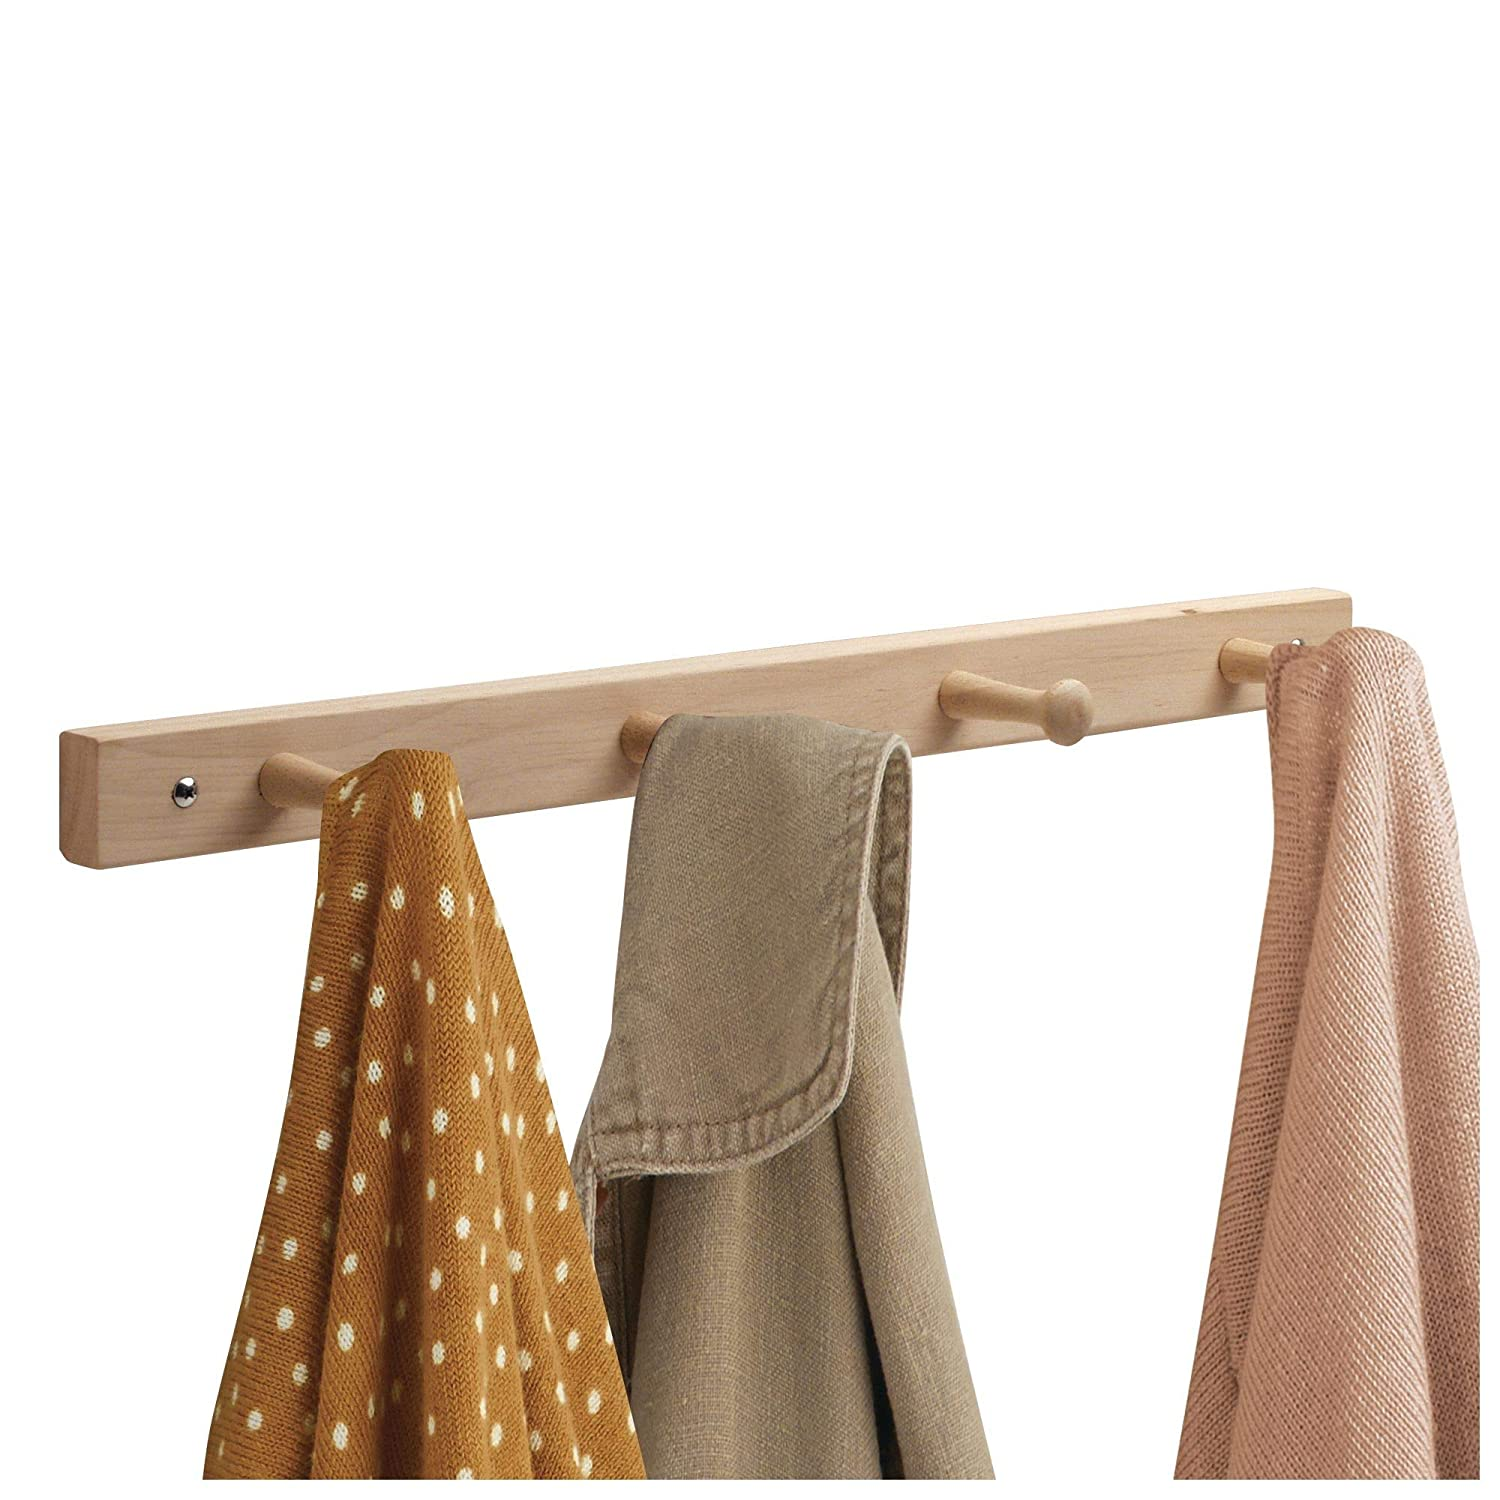 Amazon.com: mDesign Decorative Wood Wall Mount 4 Hook Storage Organizer Rack for Coats, Hoodies, Hats, Scarves, Purses, Leashes, Bath Towels & Robes - 2 ...